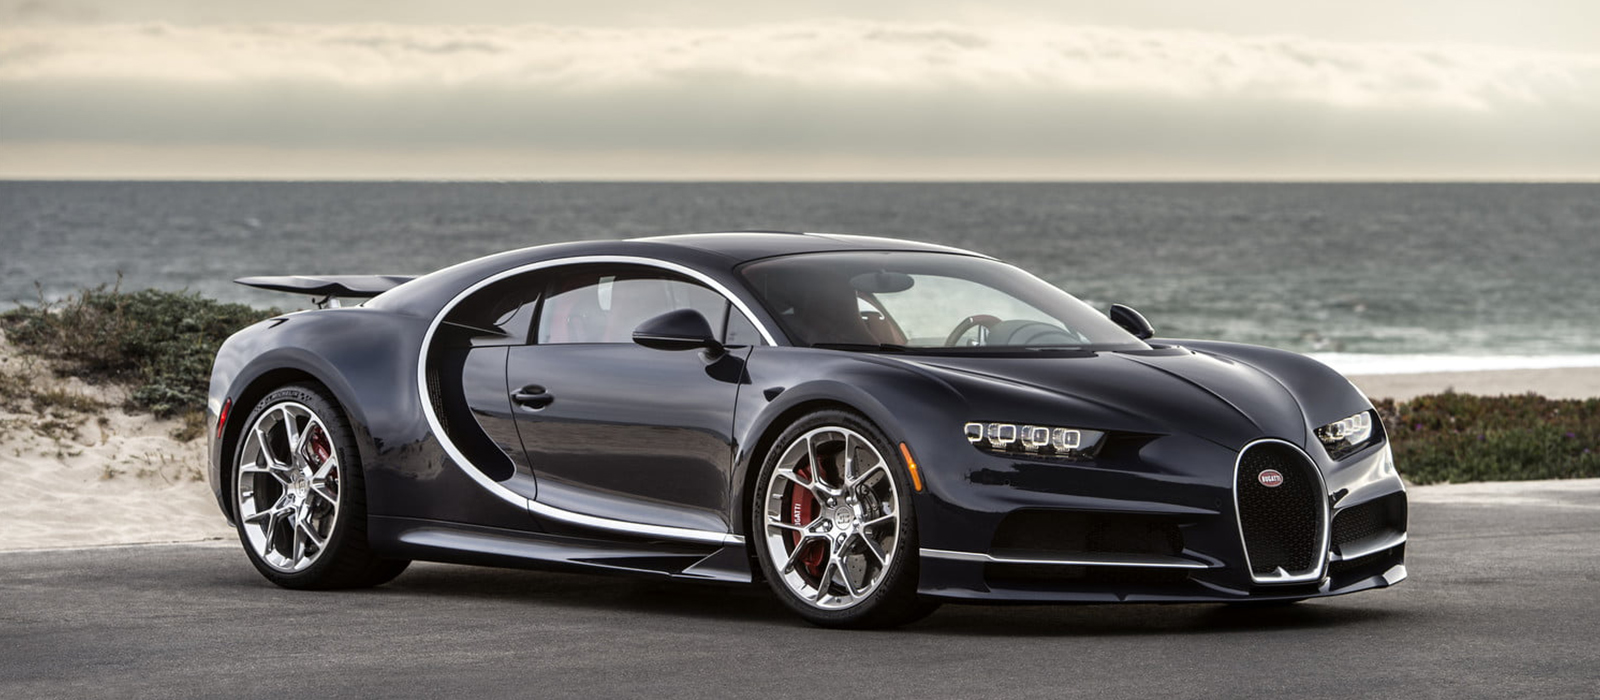 Bugattis latest offering, the 8.0L Chiron.